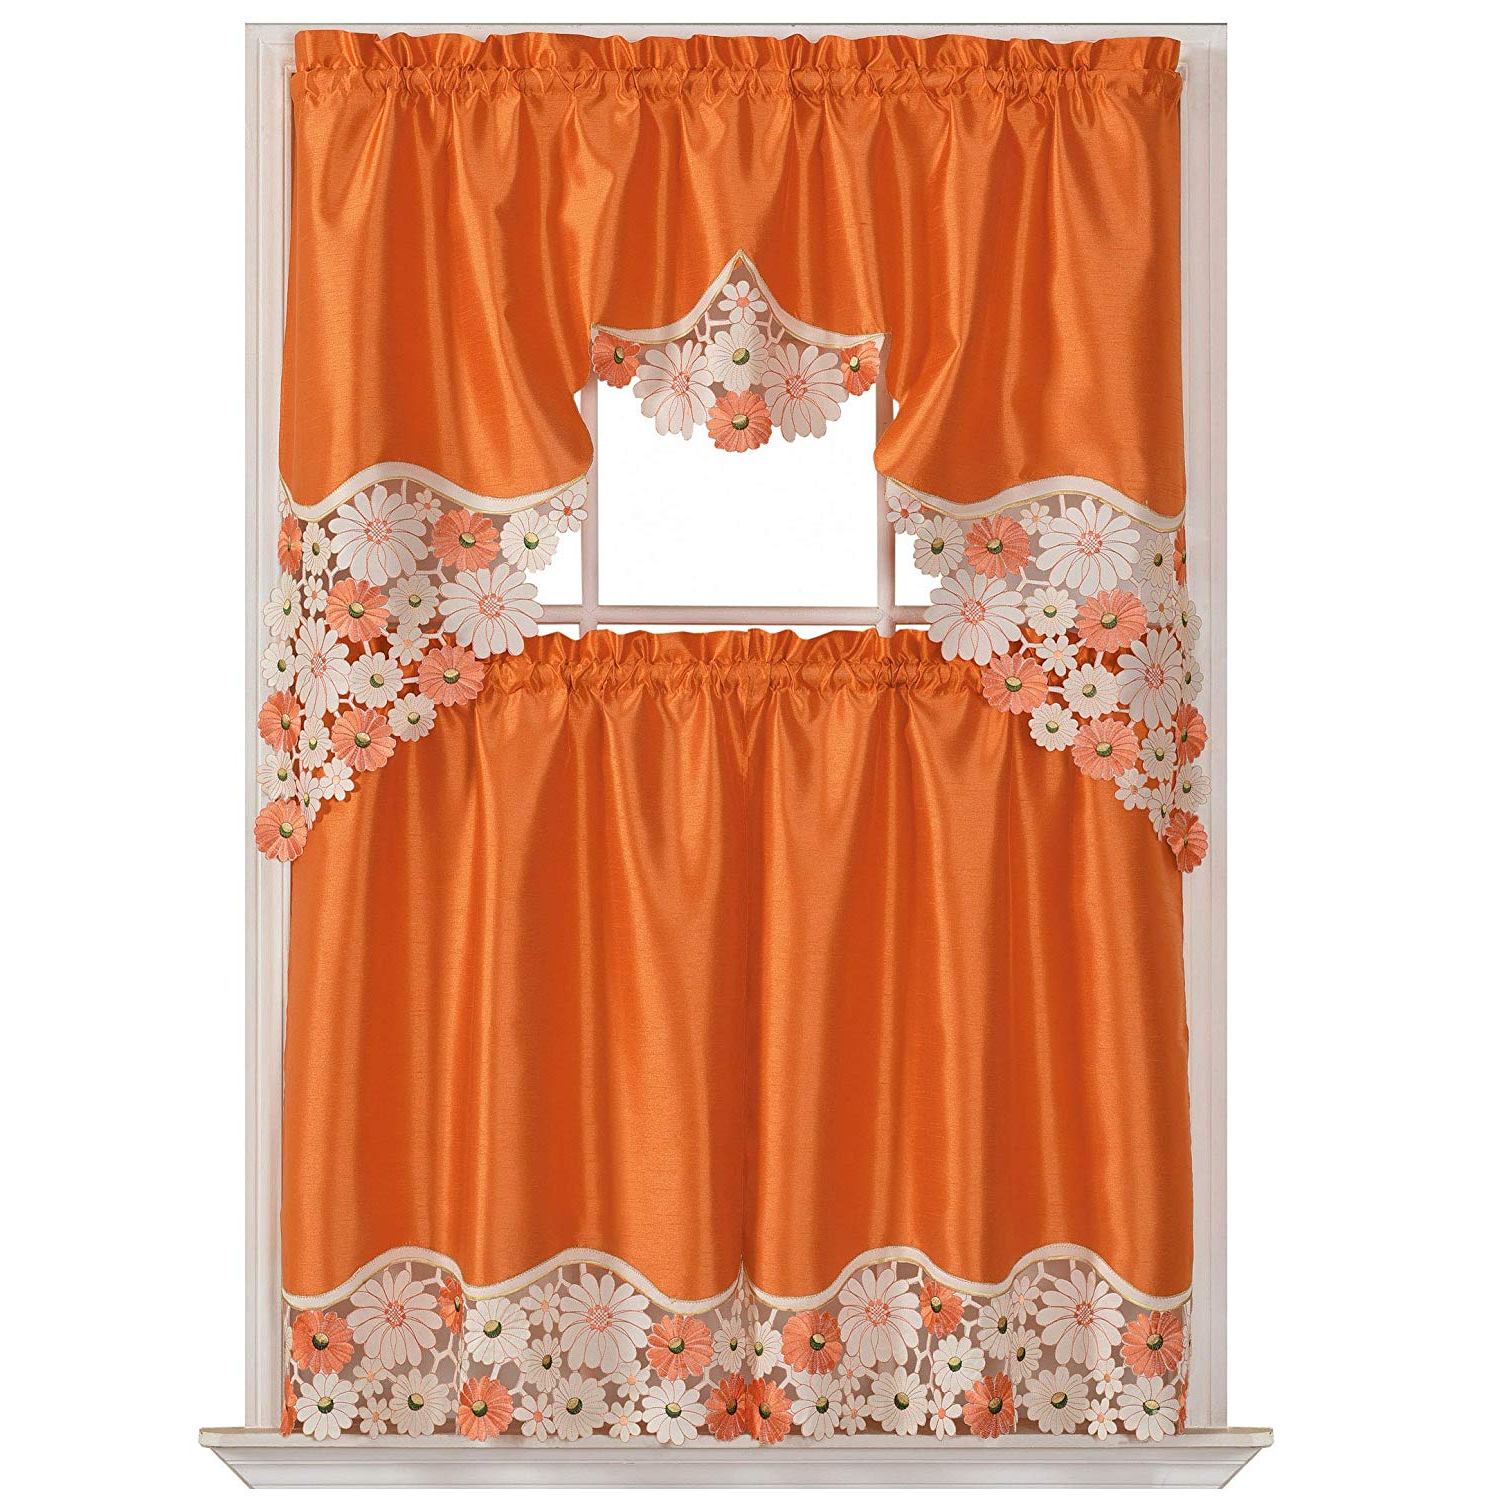 Favorite Spring Daisy Tiered Curtain 3 Piece Sets In Gohd Golden Ocean Home Decor Spring Vigor Kitchen Cafe Curtain Set Swag  Valance And Tier Set. Nice Matching Color Daisy Embroidery On Border With (Gallery 5 of 20)